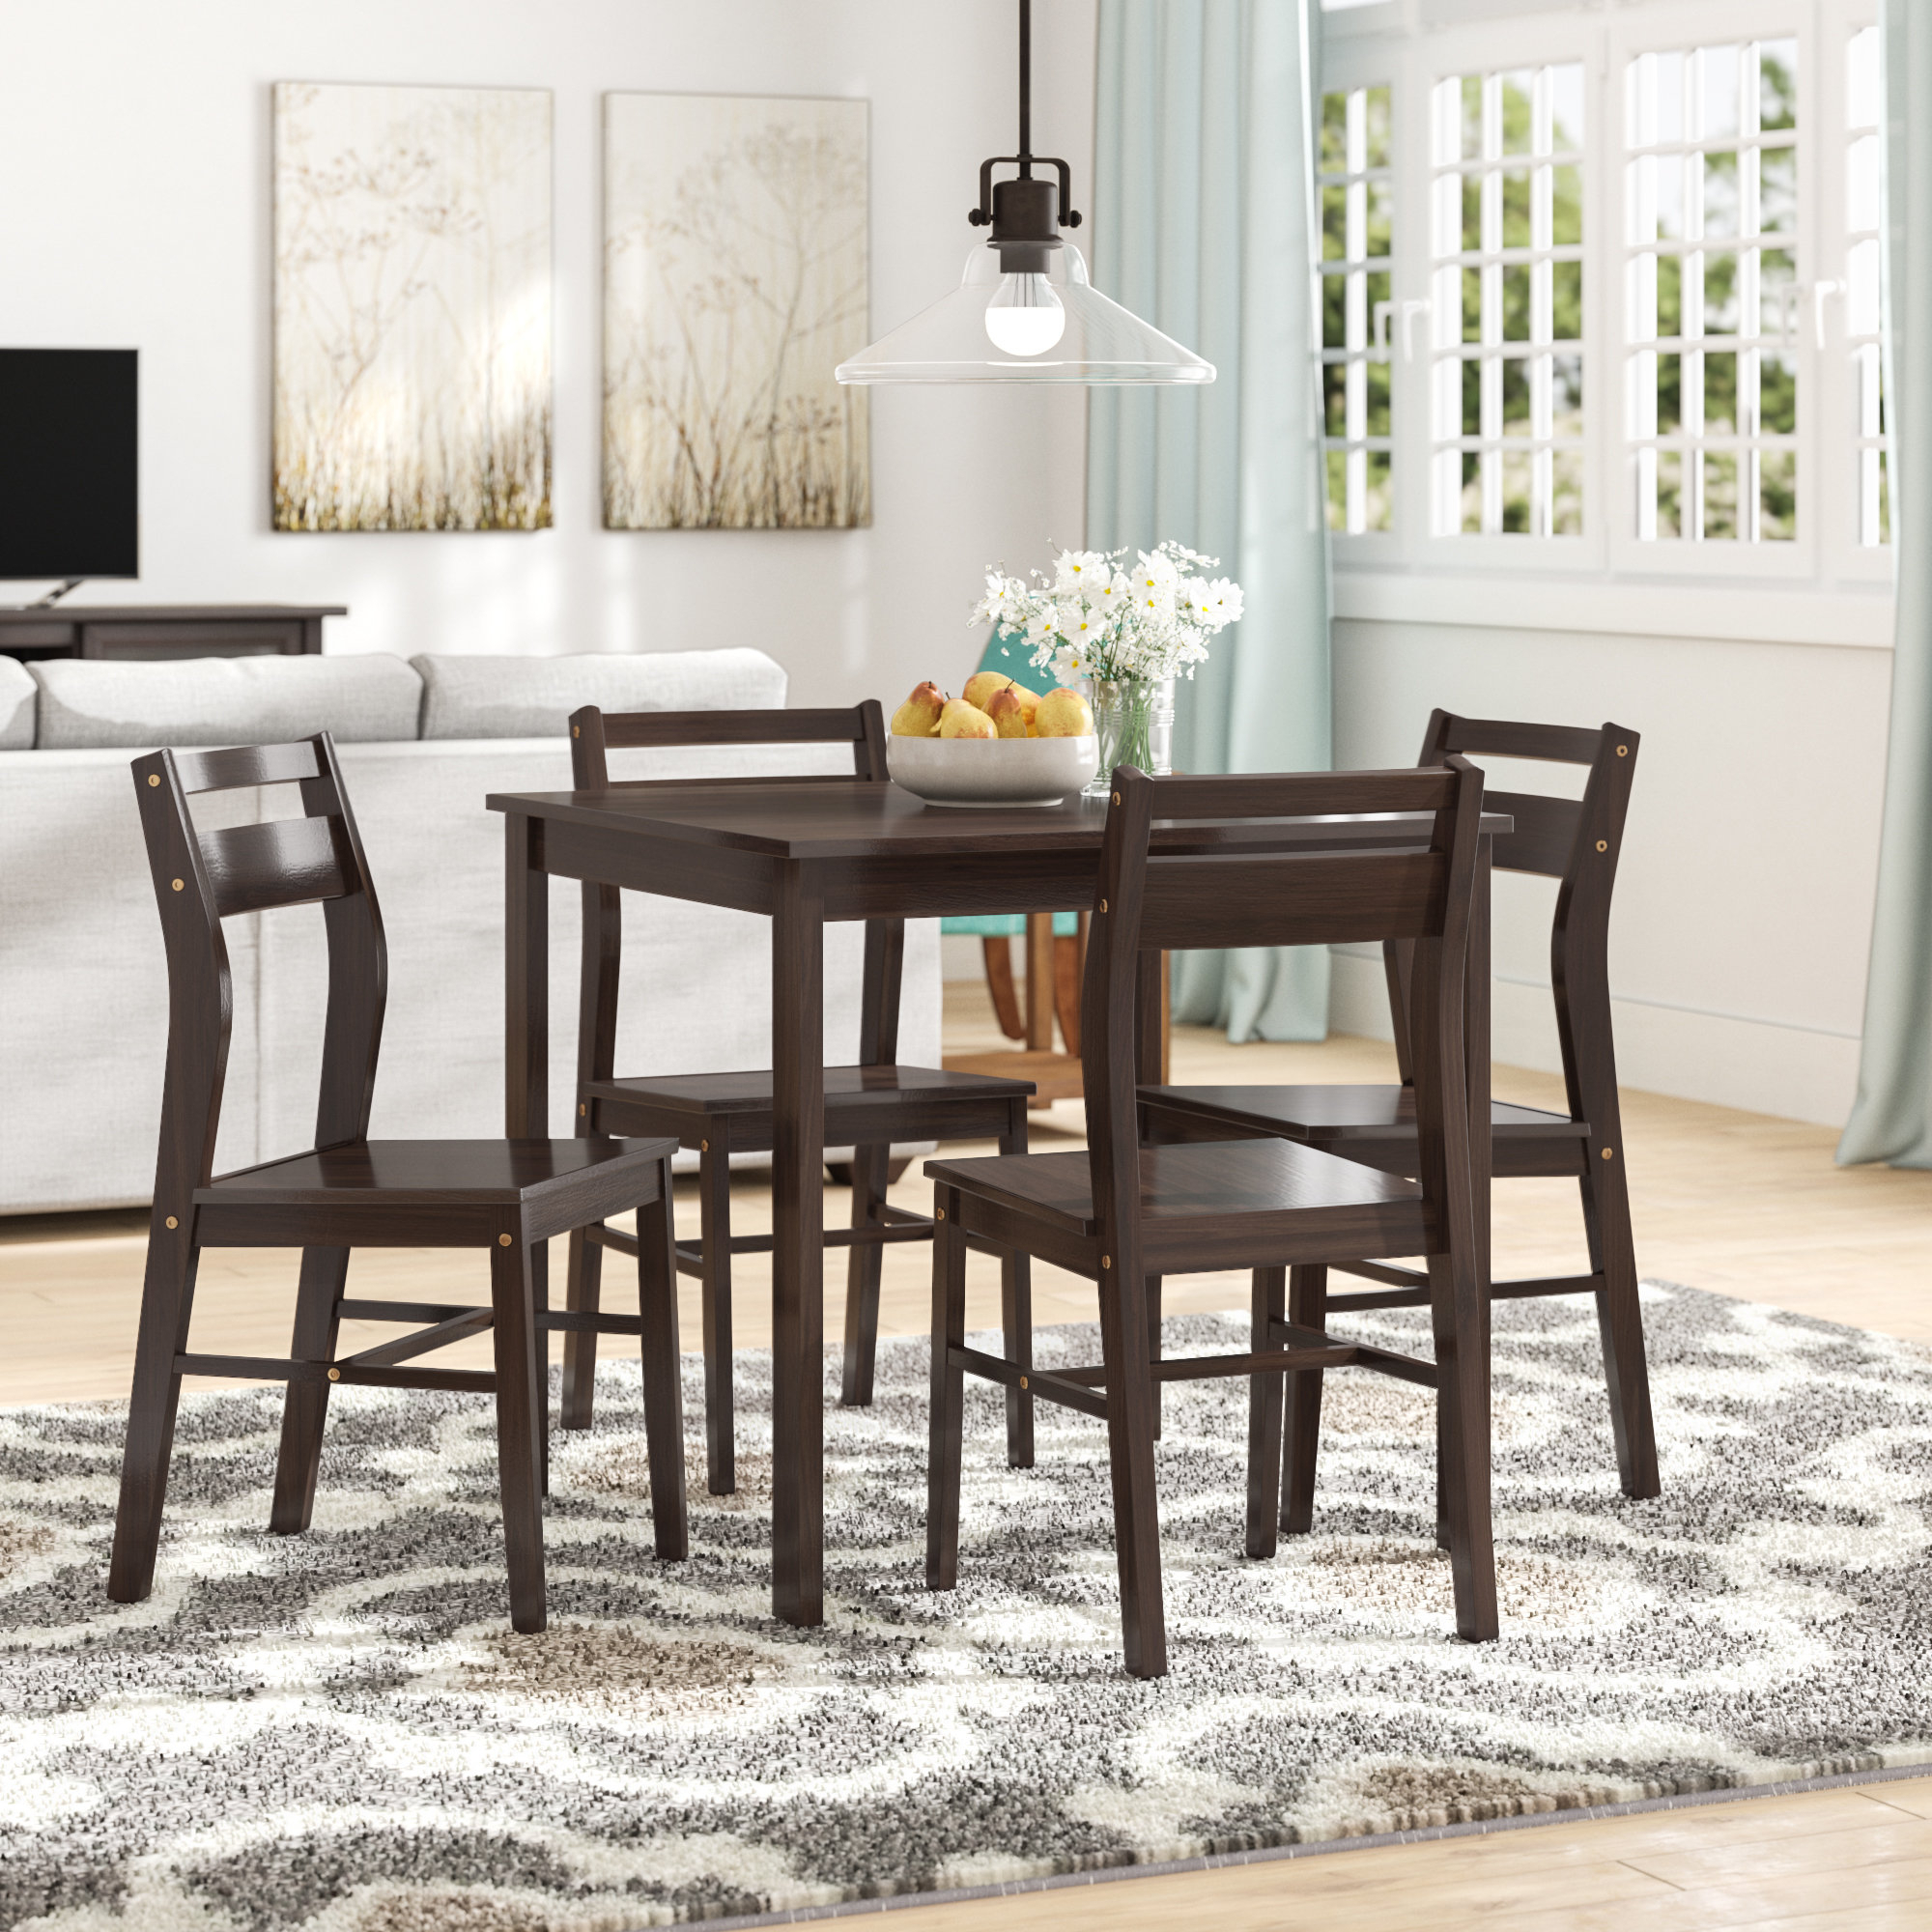 Hersom 5 Piece Dining Set Intended For Well Liked Jarrod 5 Piece Dining Sets (View 6 of 20)